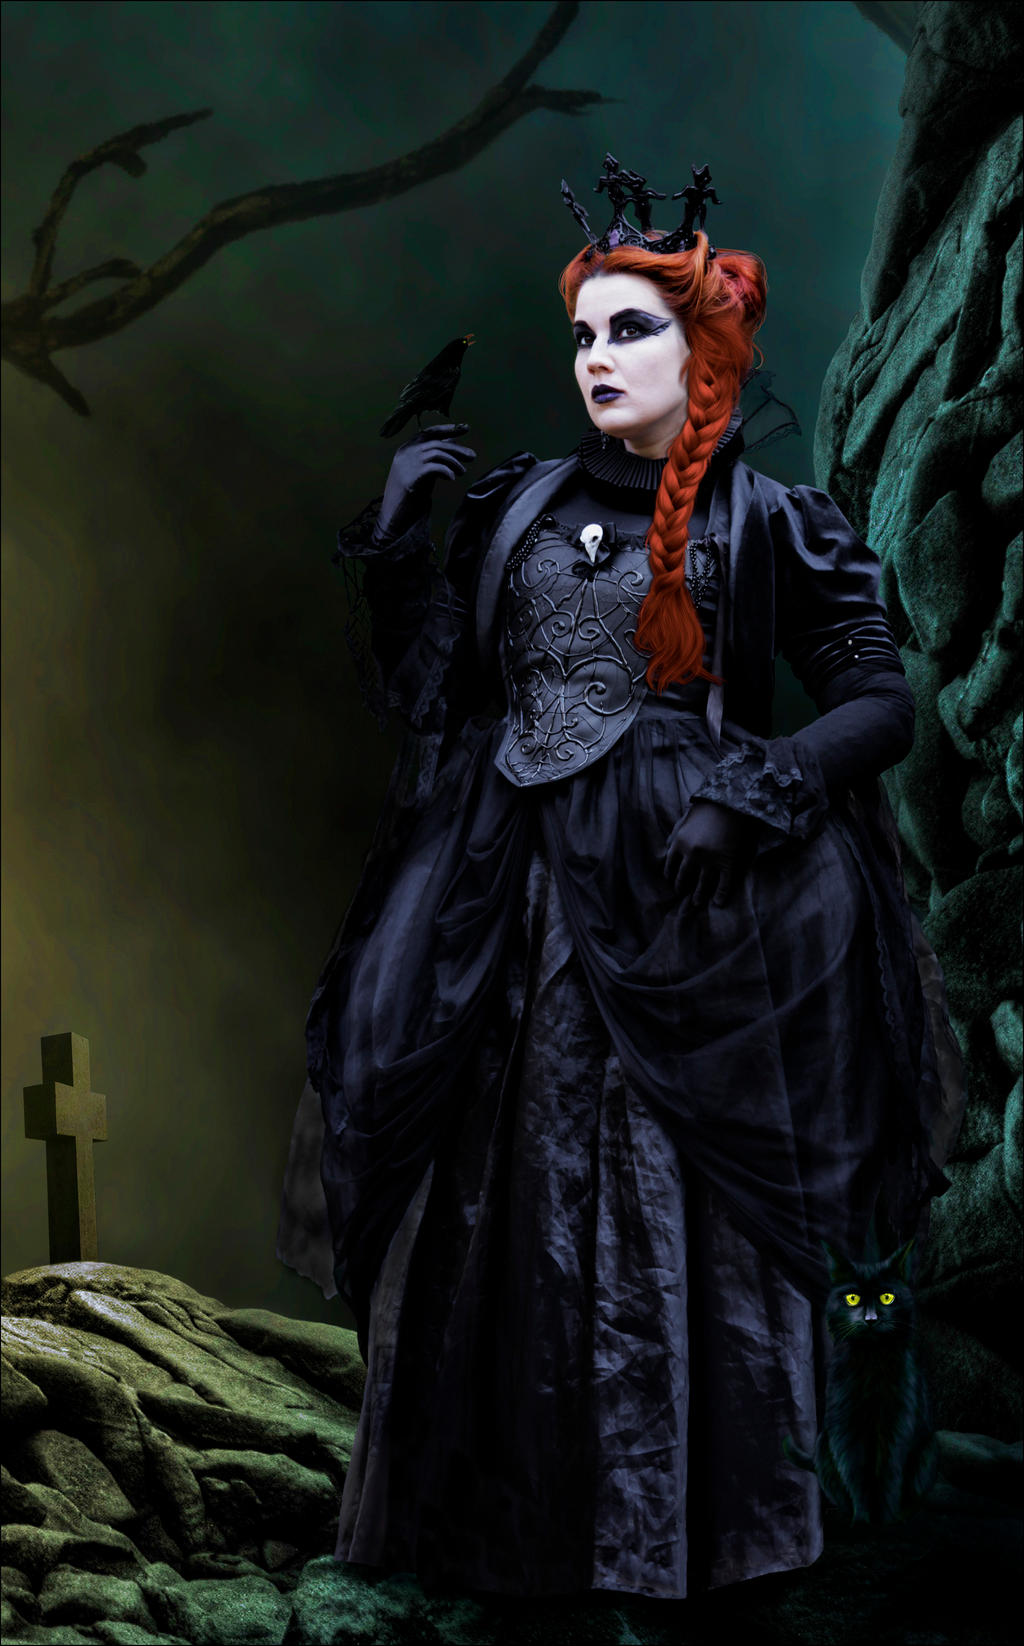 The Evil Gothic Queen by Roys-Art on DeviantArt